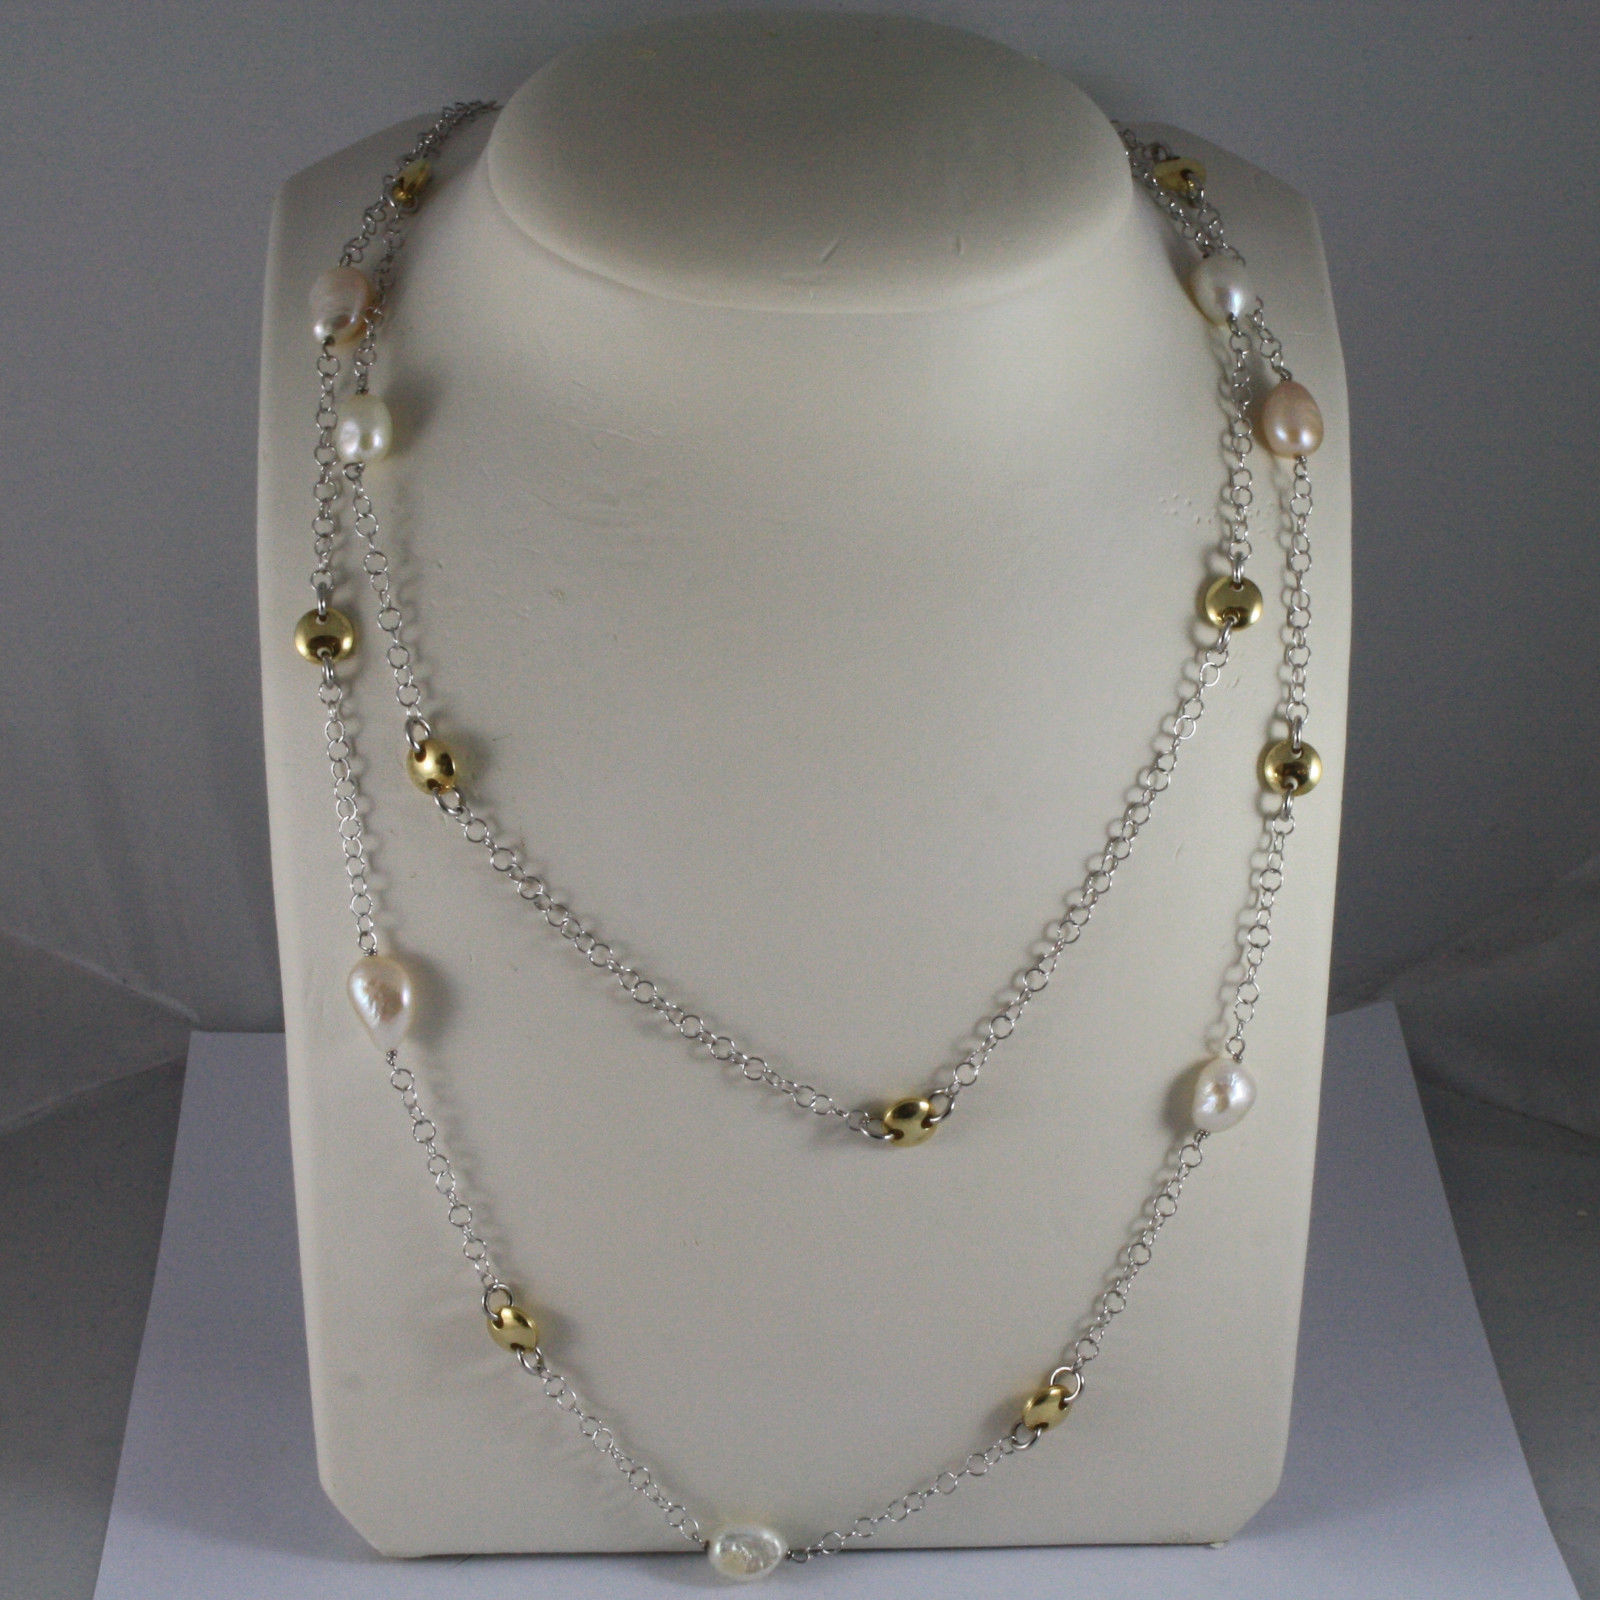 .925 SILVER RHODIUM DOUBLE WIRE NECKLACE WITH BAROQUE PEARLS AND YELLOW DISC